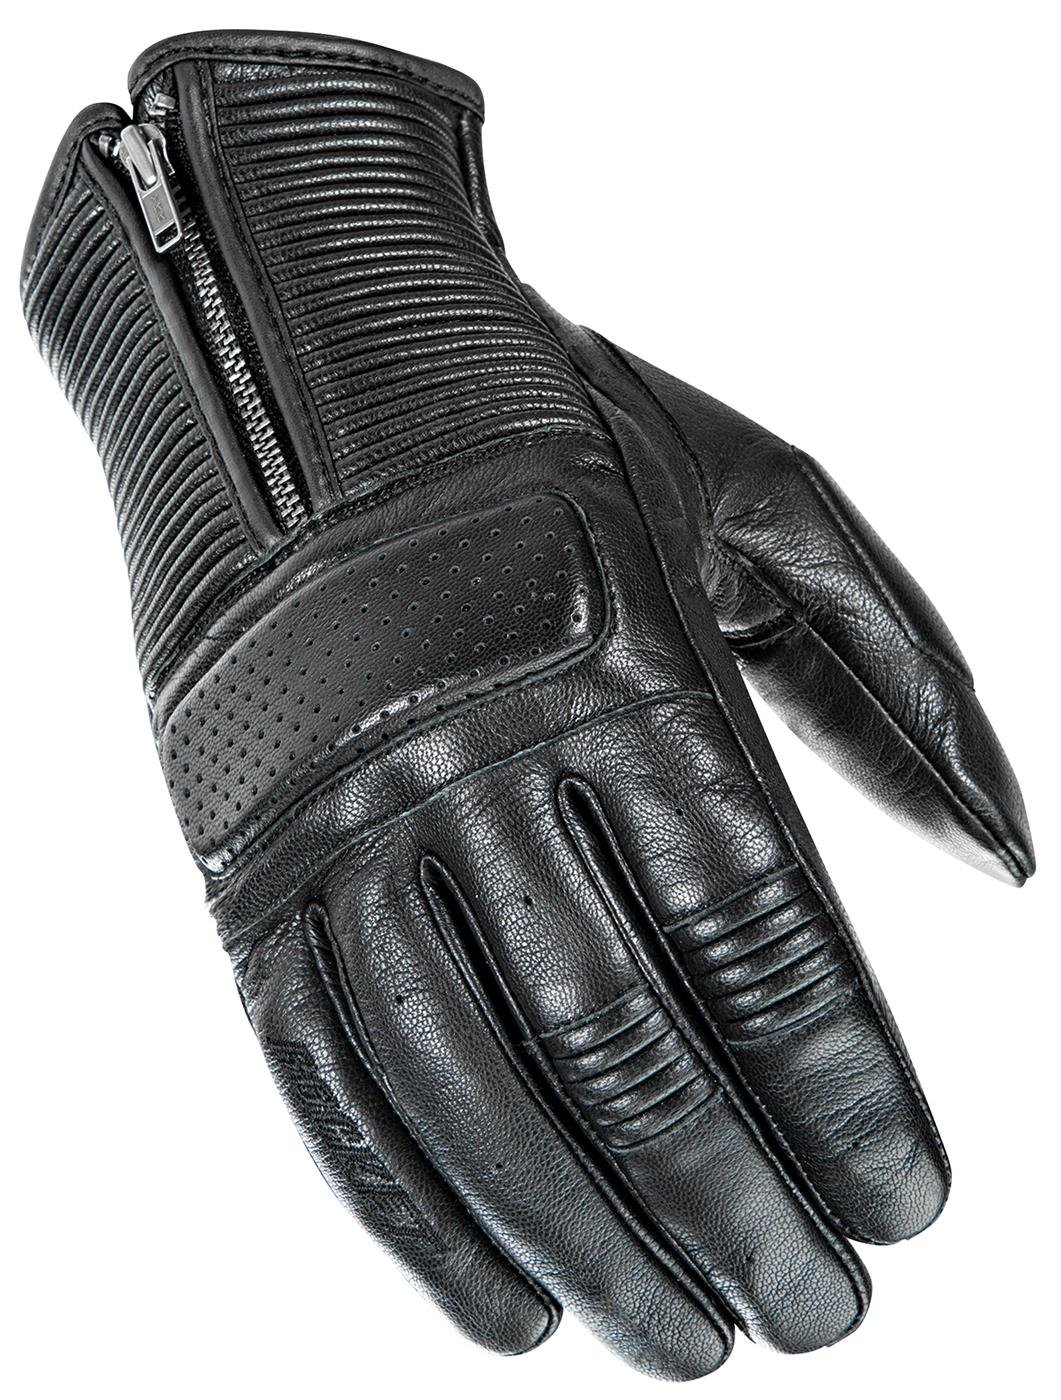 Motorcycle leather gloves amazon - Amazon Com Joe Rocket Men S Caf Racer Motorcycle Gloves Brown Large Automotive